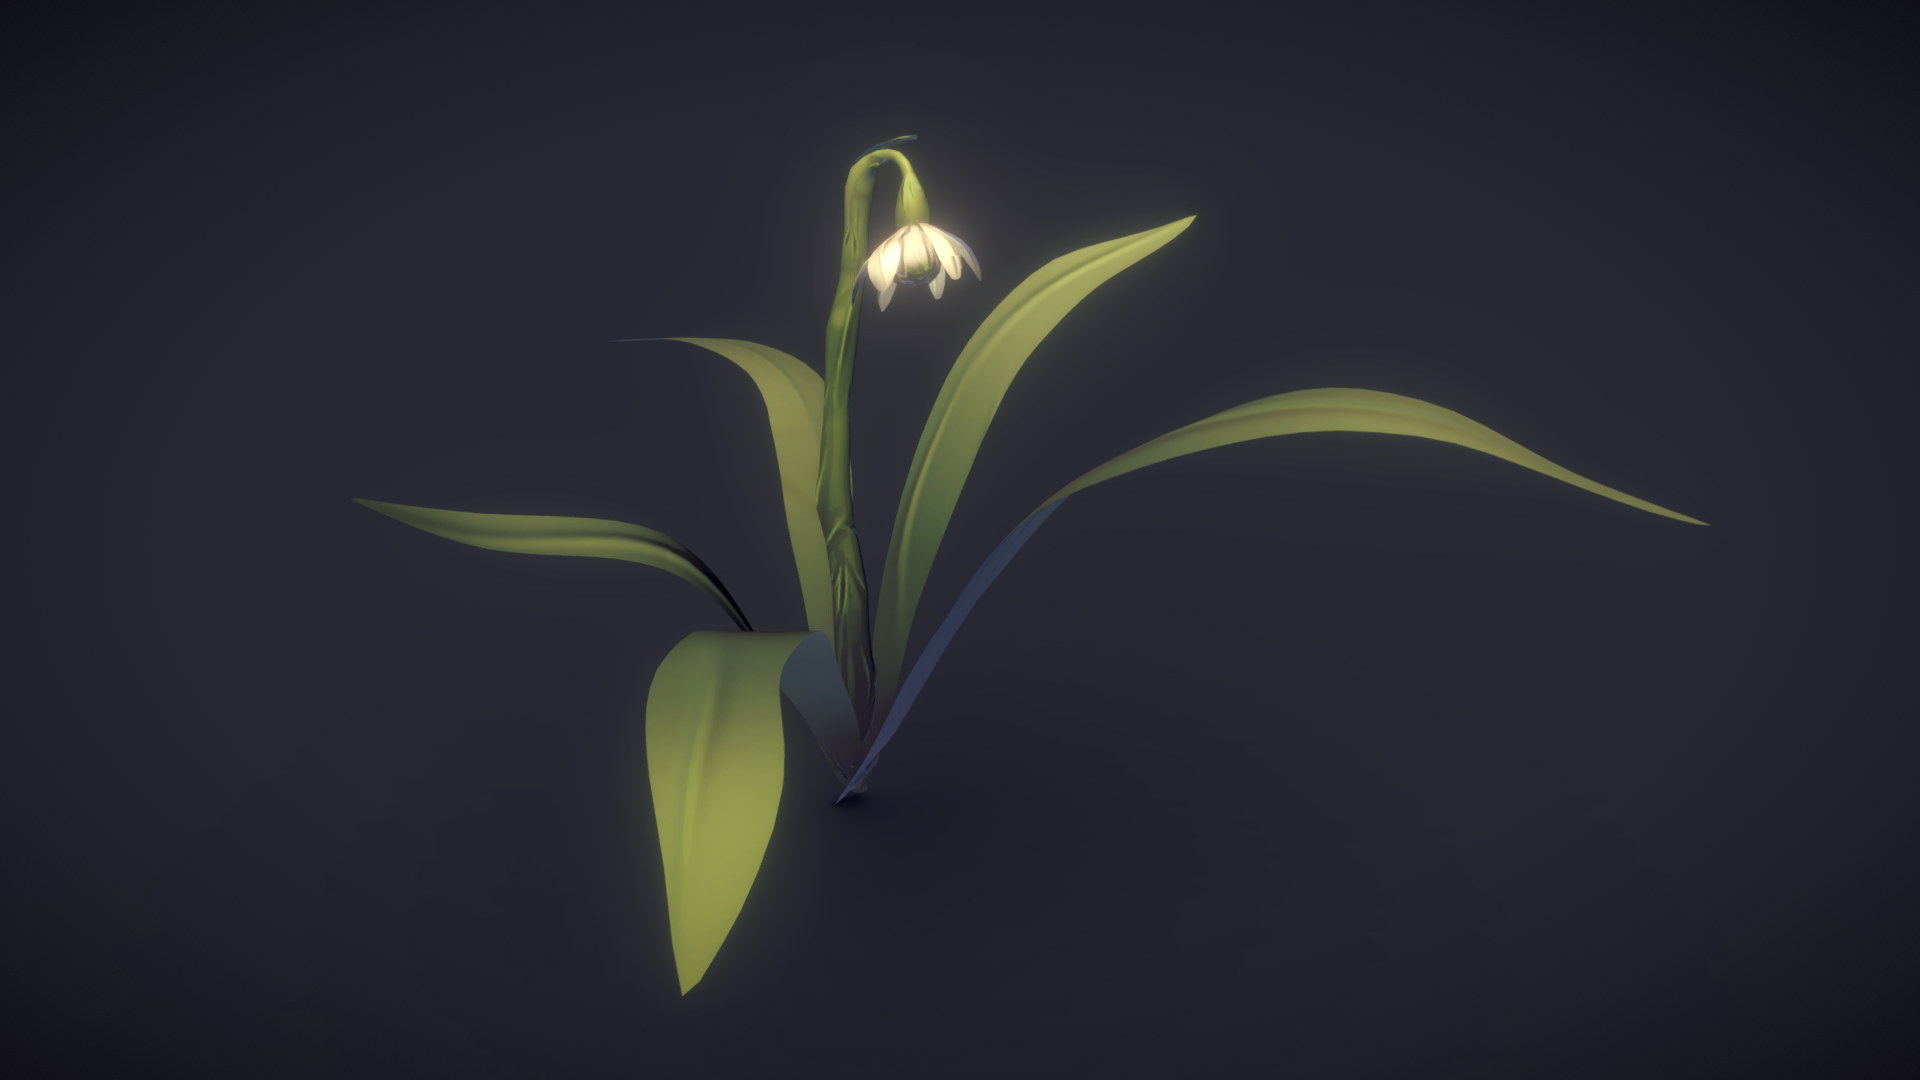 Flower Model from Final Year Project